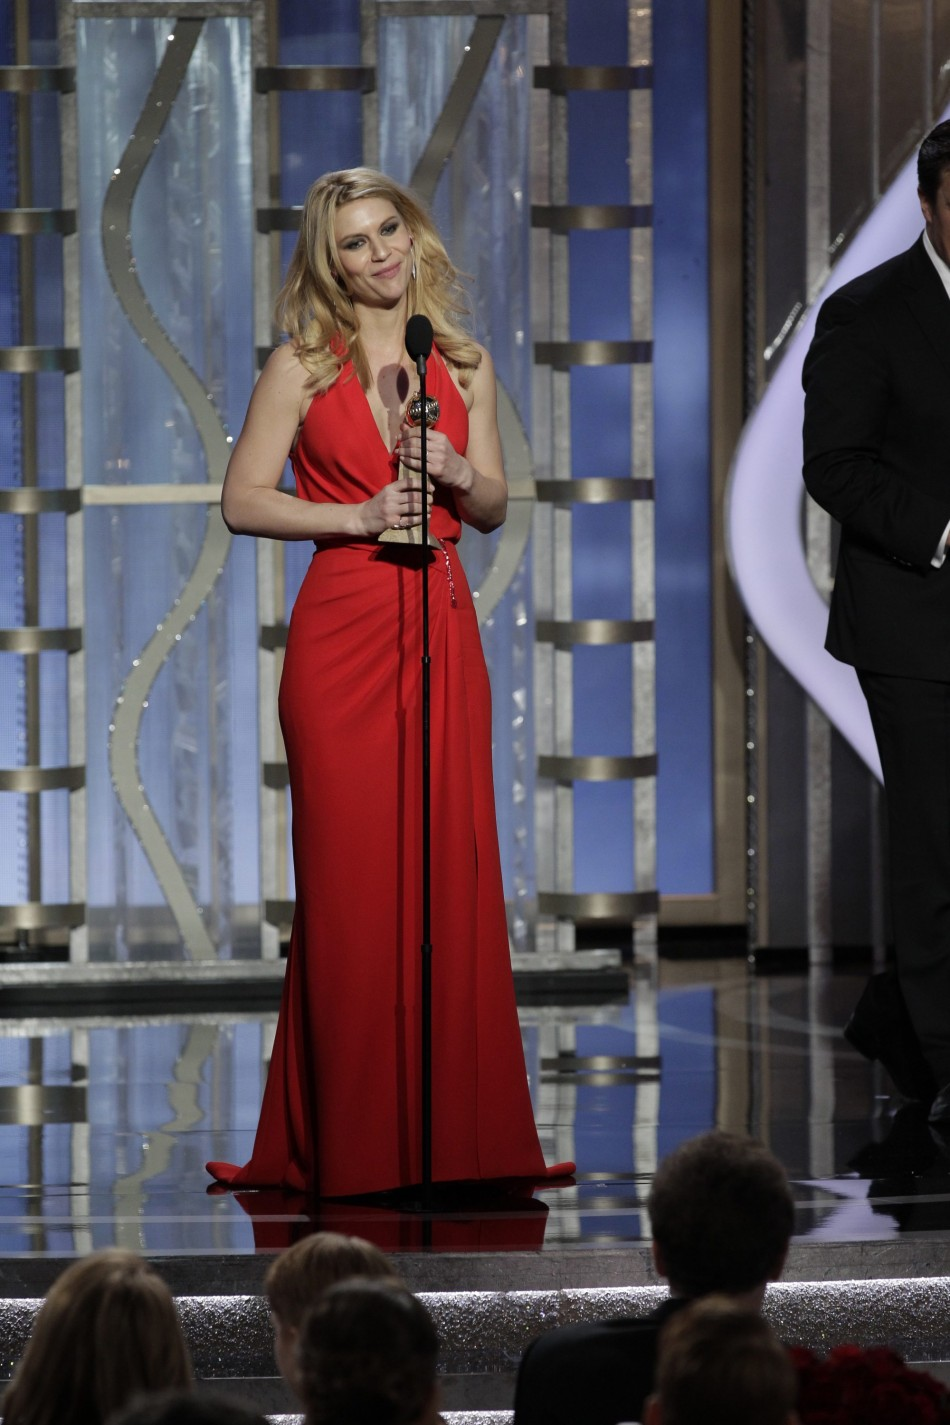 Claire Danes accepts the award for Best Actress - TV Series, Drama, for